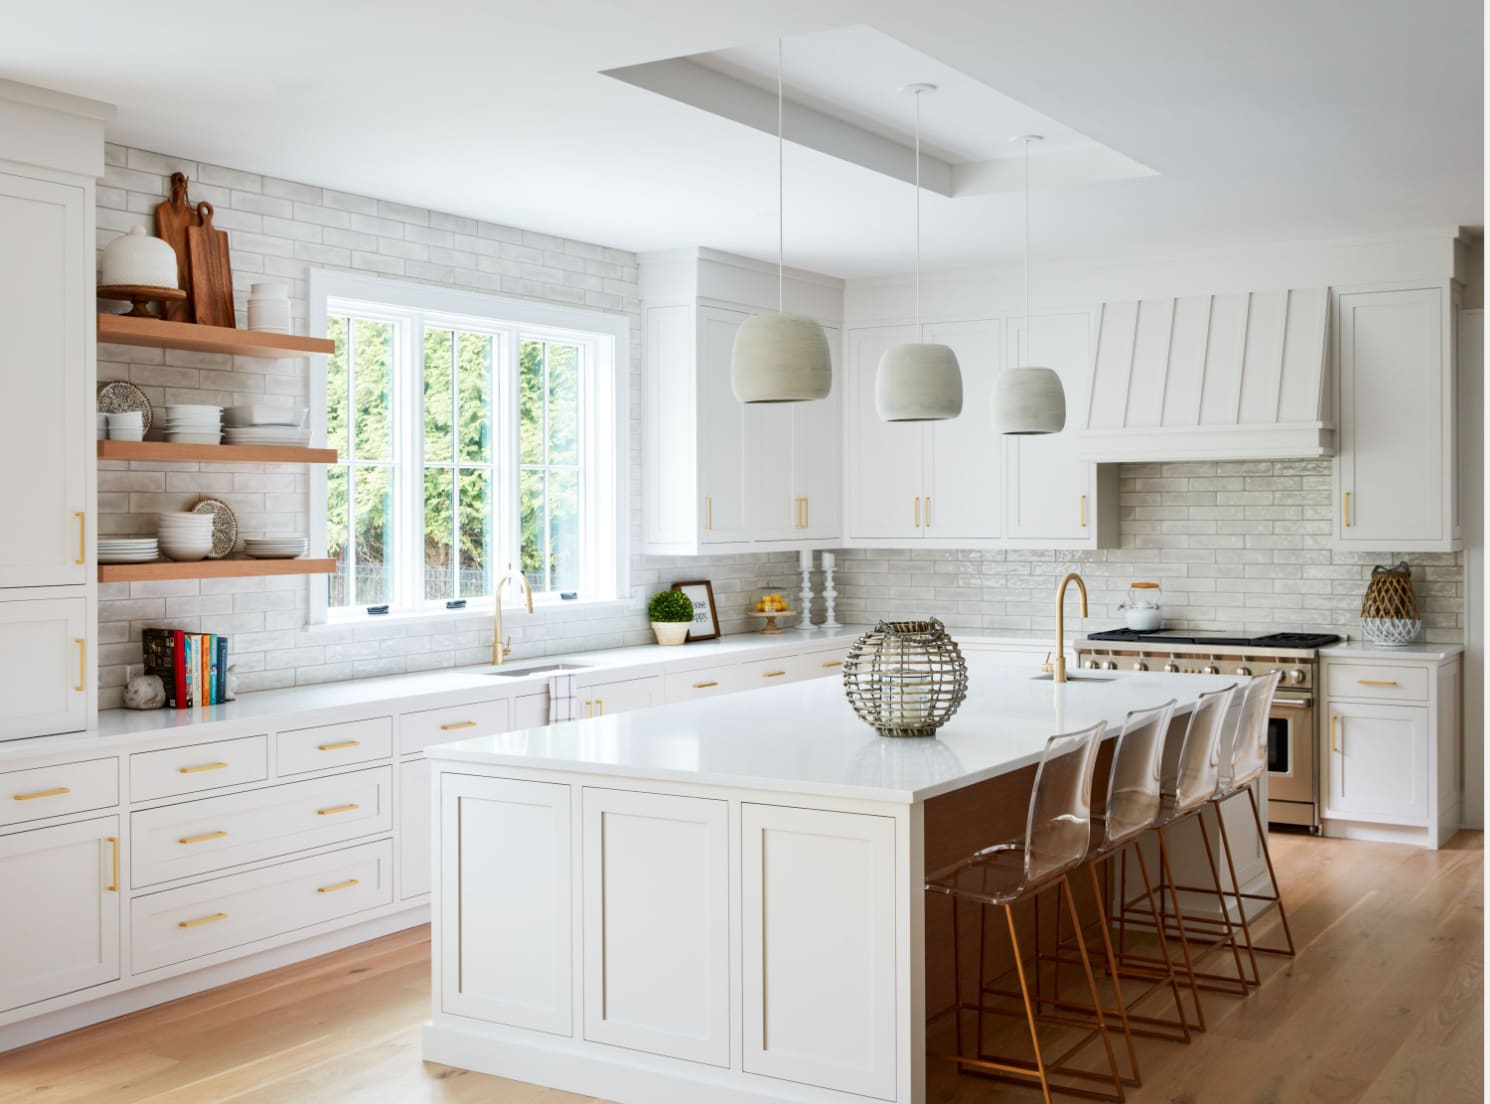 Featured: Karam Small Pendant by Sean Lavin / Photo: Tim Lenz Photography